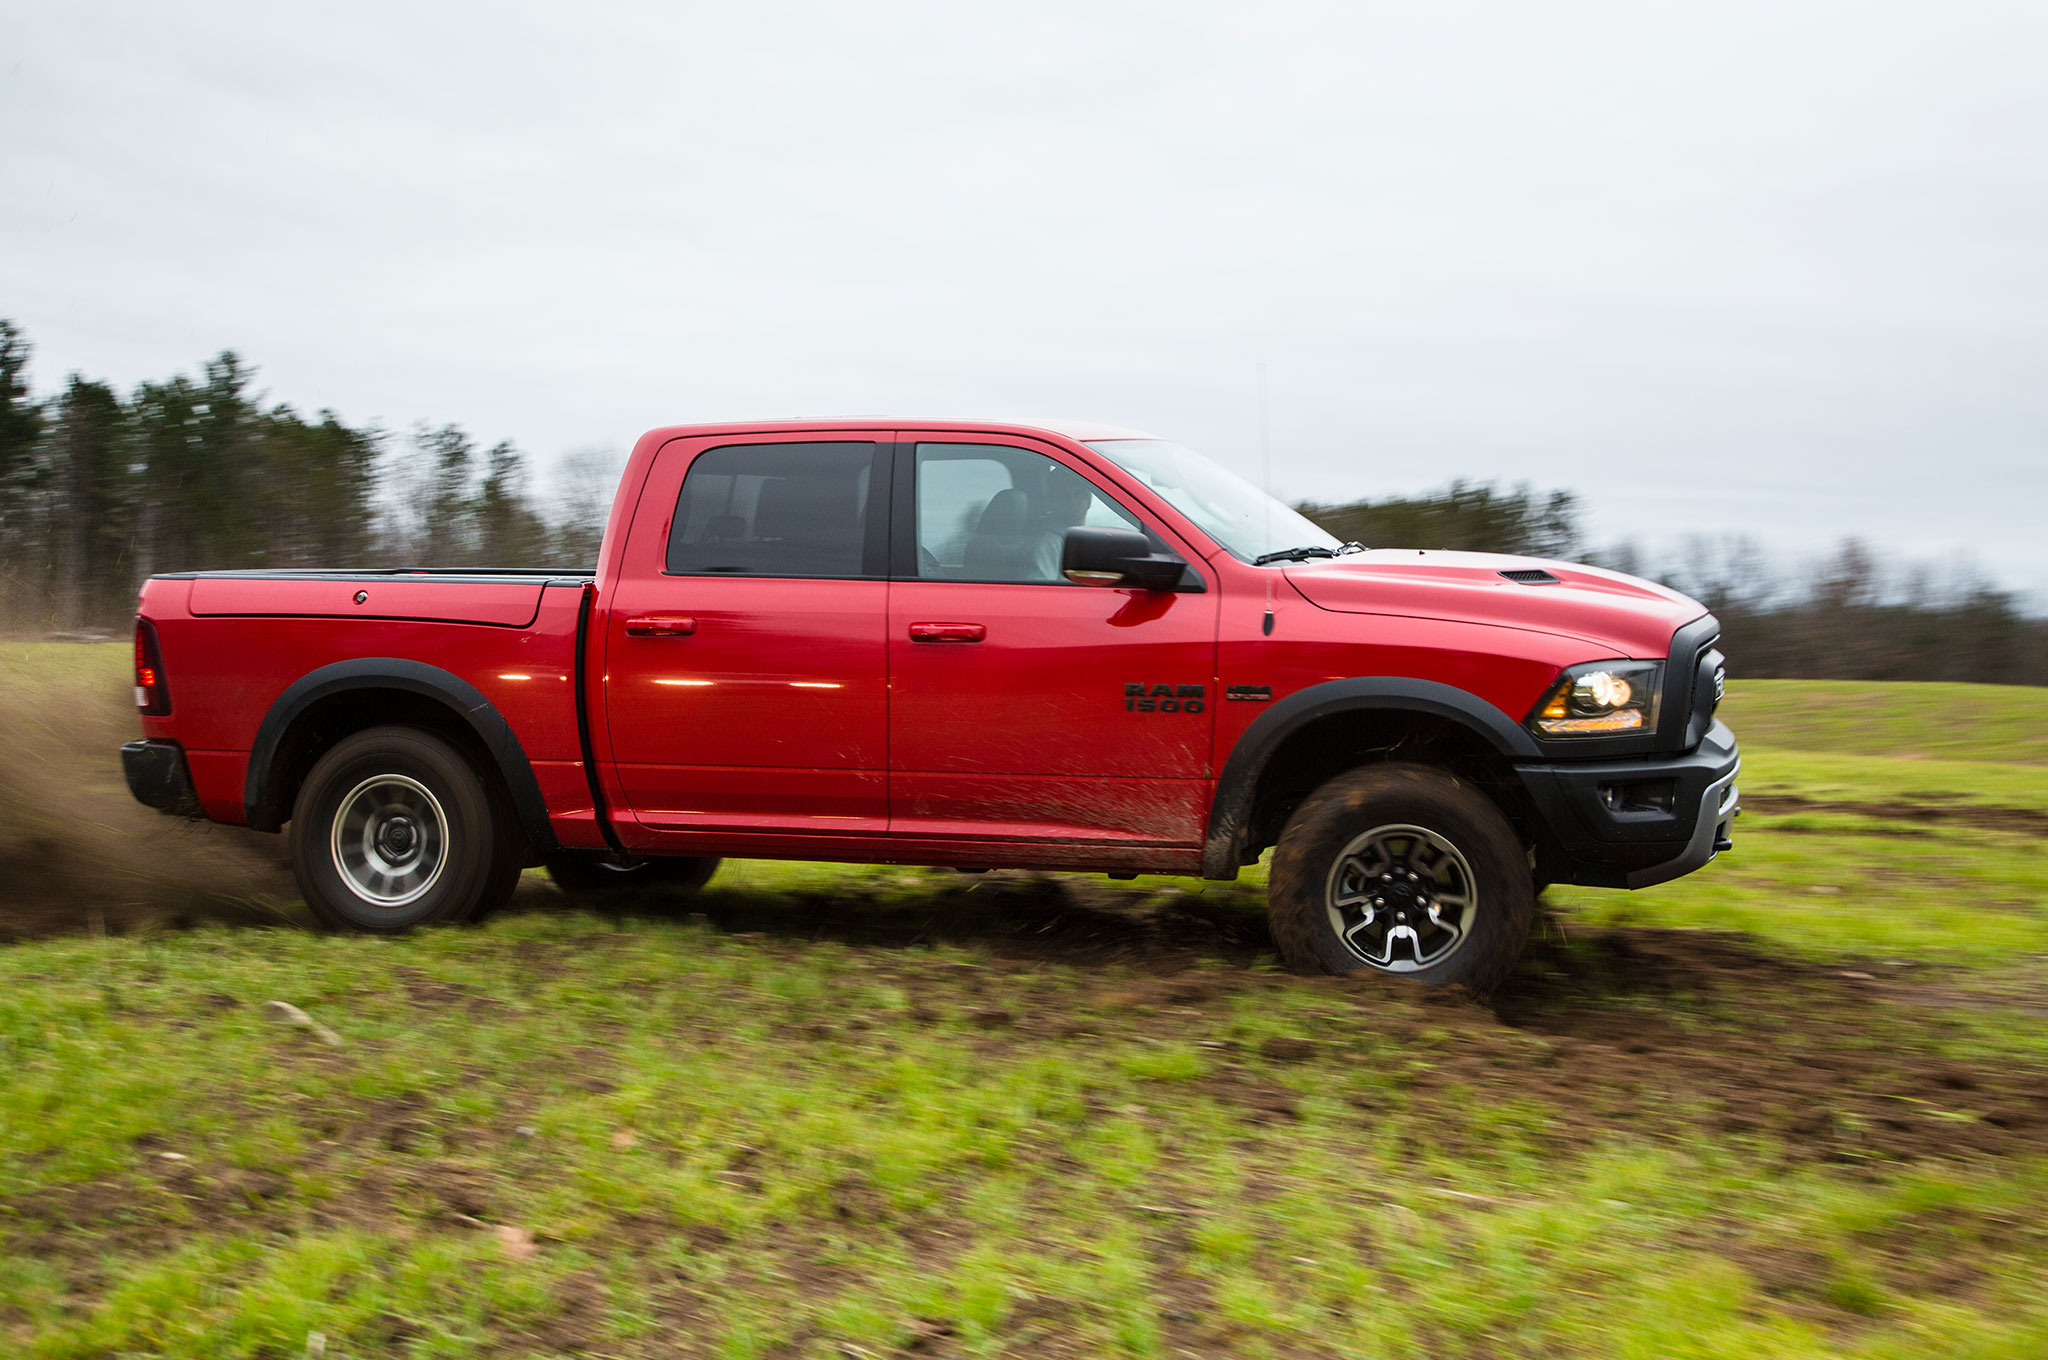 Innovative 2016 Ram 1500 Rebel 4x4 Hemi Side Profile In Motion 01